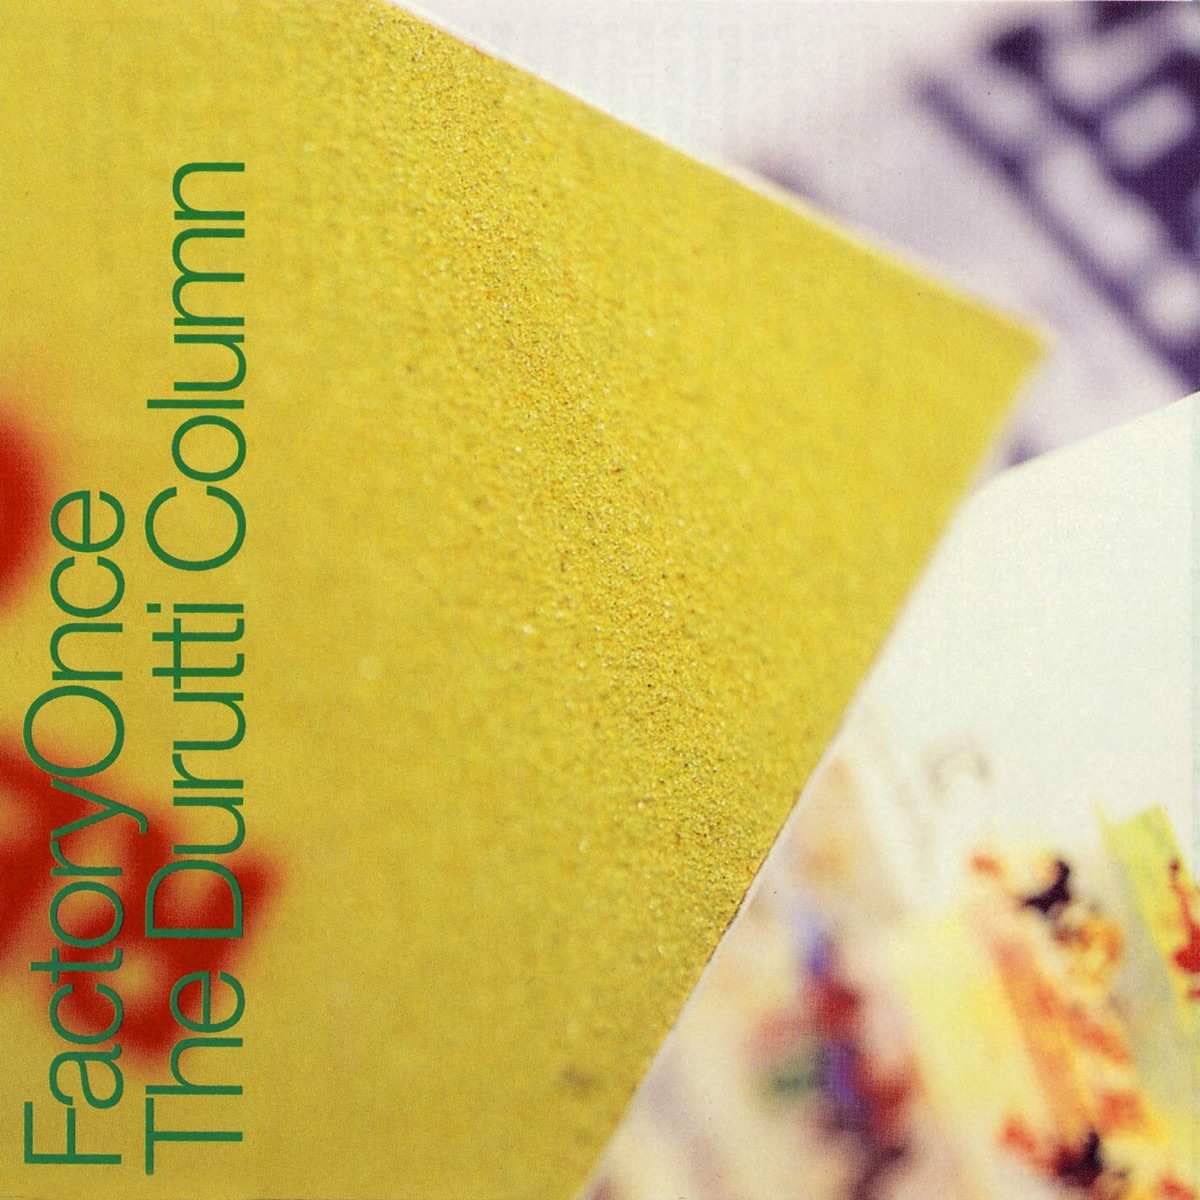 The Return Of The Durutti Column (1980)